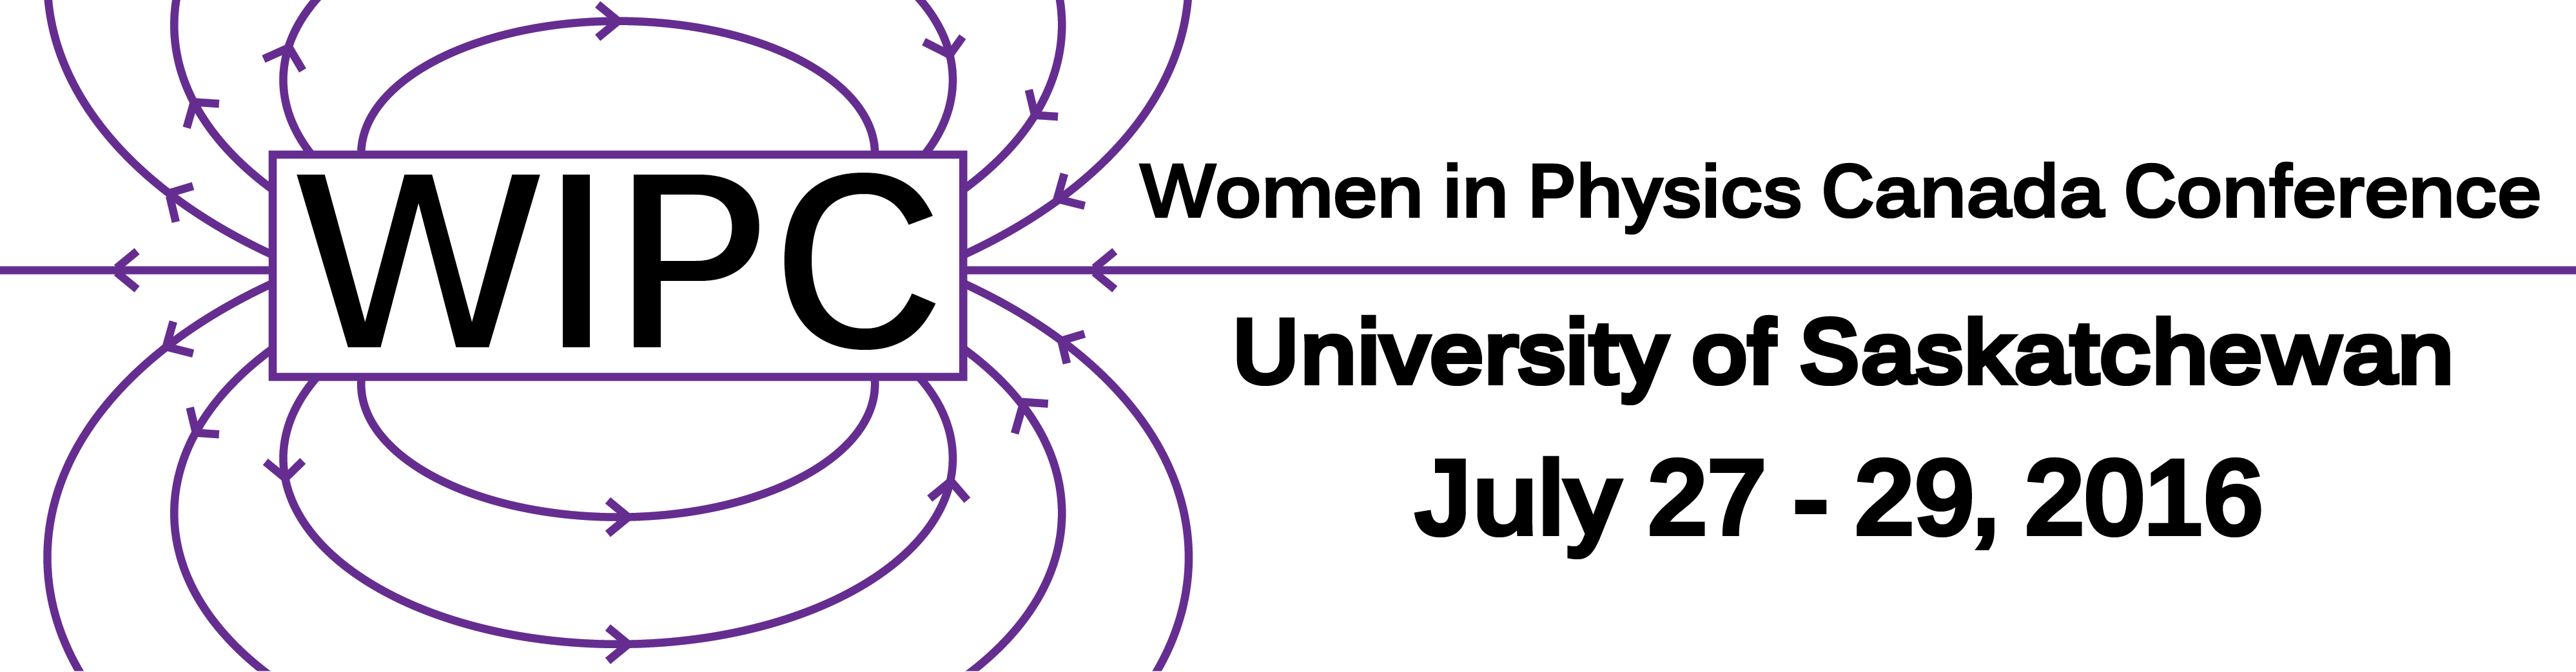 Women in Physics Canada 2016